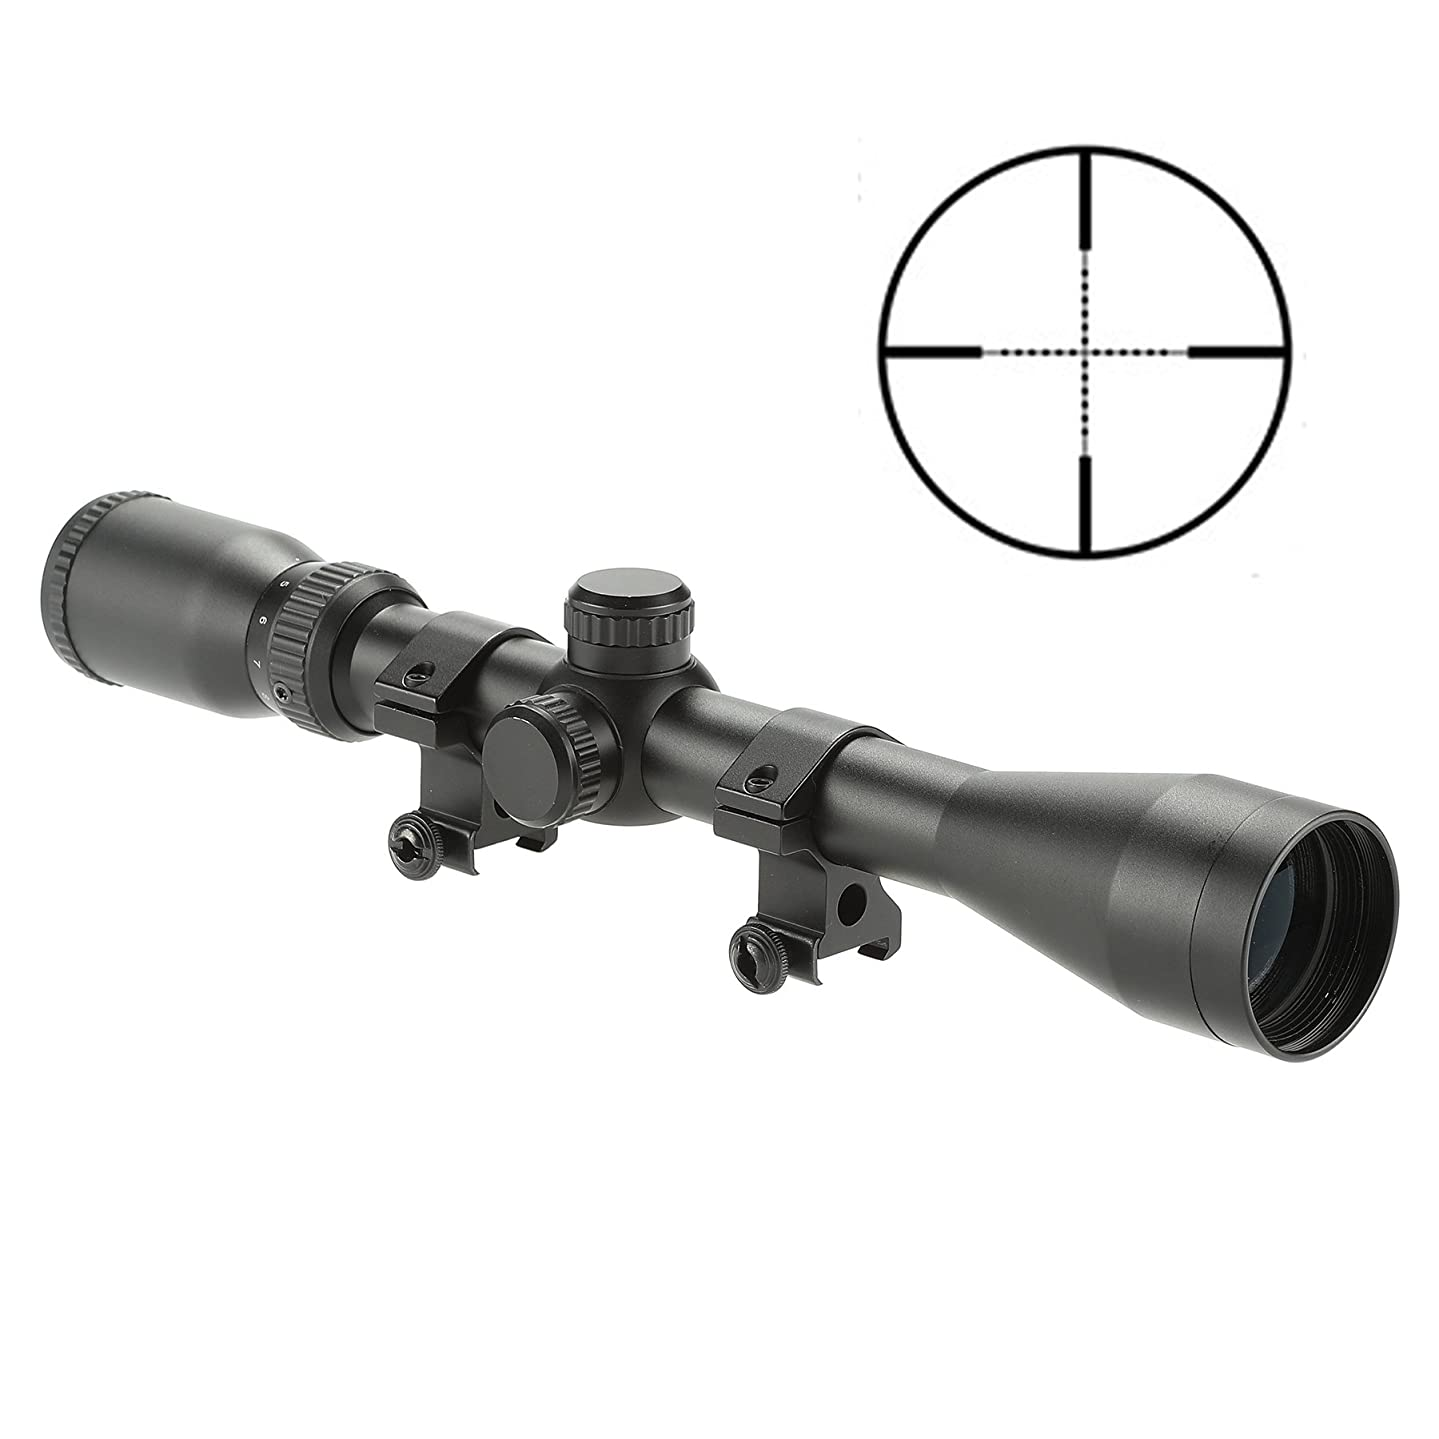 Pinty Pro 4-12X40 Mil-dot Tactical Rifle Scope Optics Optical Scope for Hunting w/Aircraft-Grade Aluminum Alloy Tube Side Focus, Waterproof/Fog Proof (4-12x40)